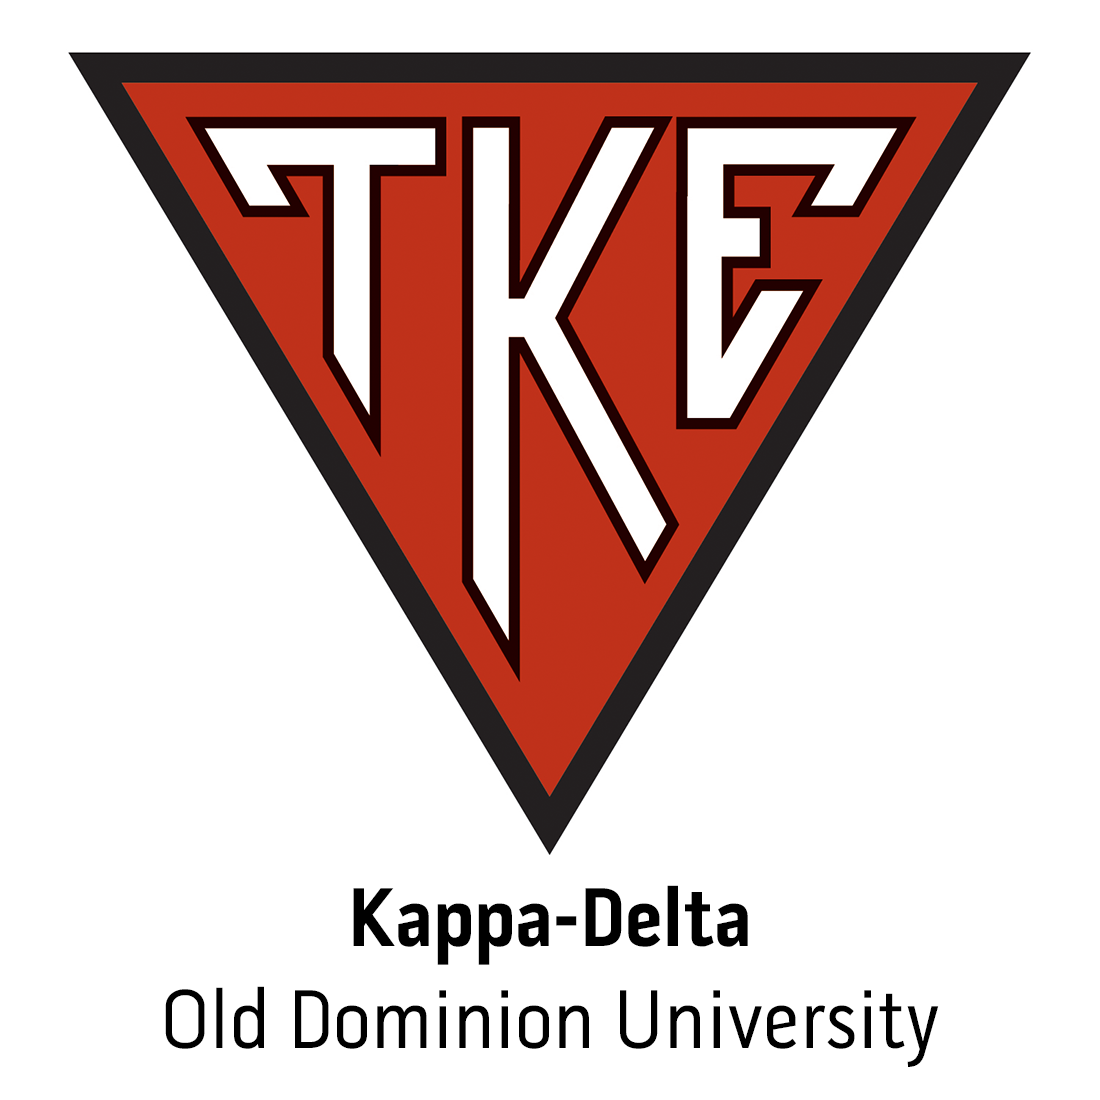 Kappa-Delta Chapter at Old Dominion University